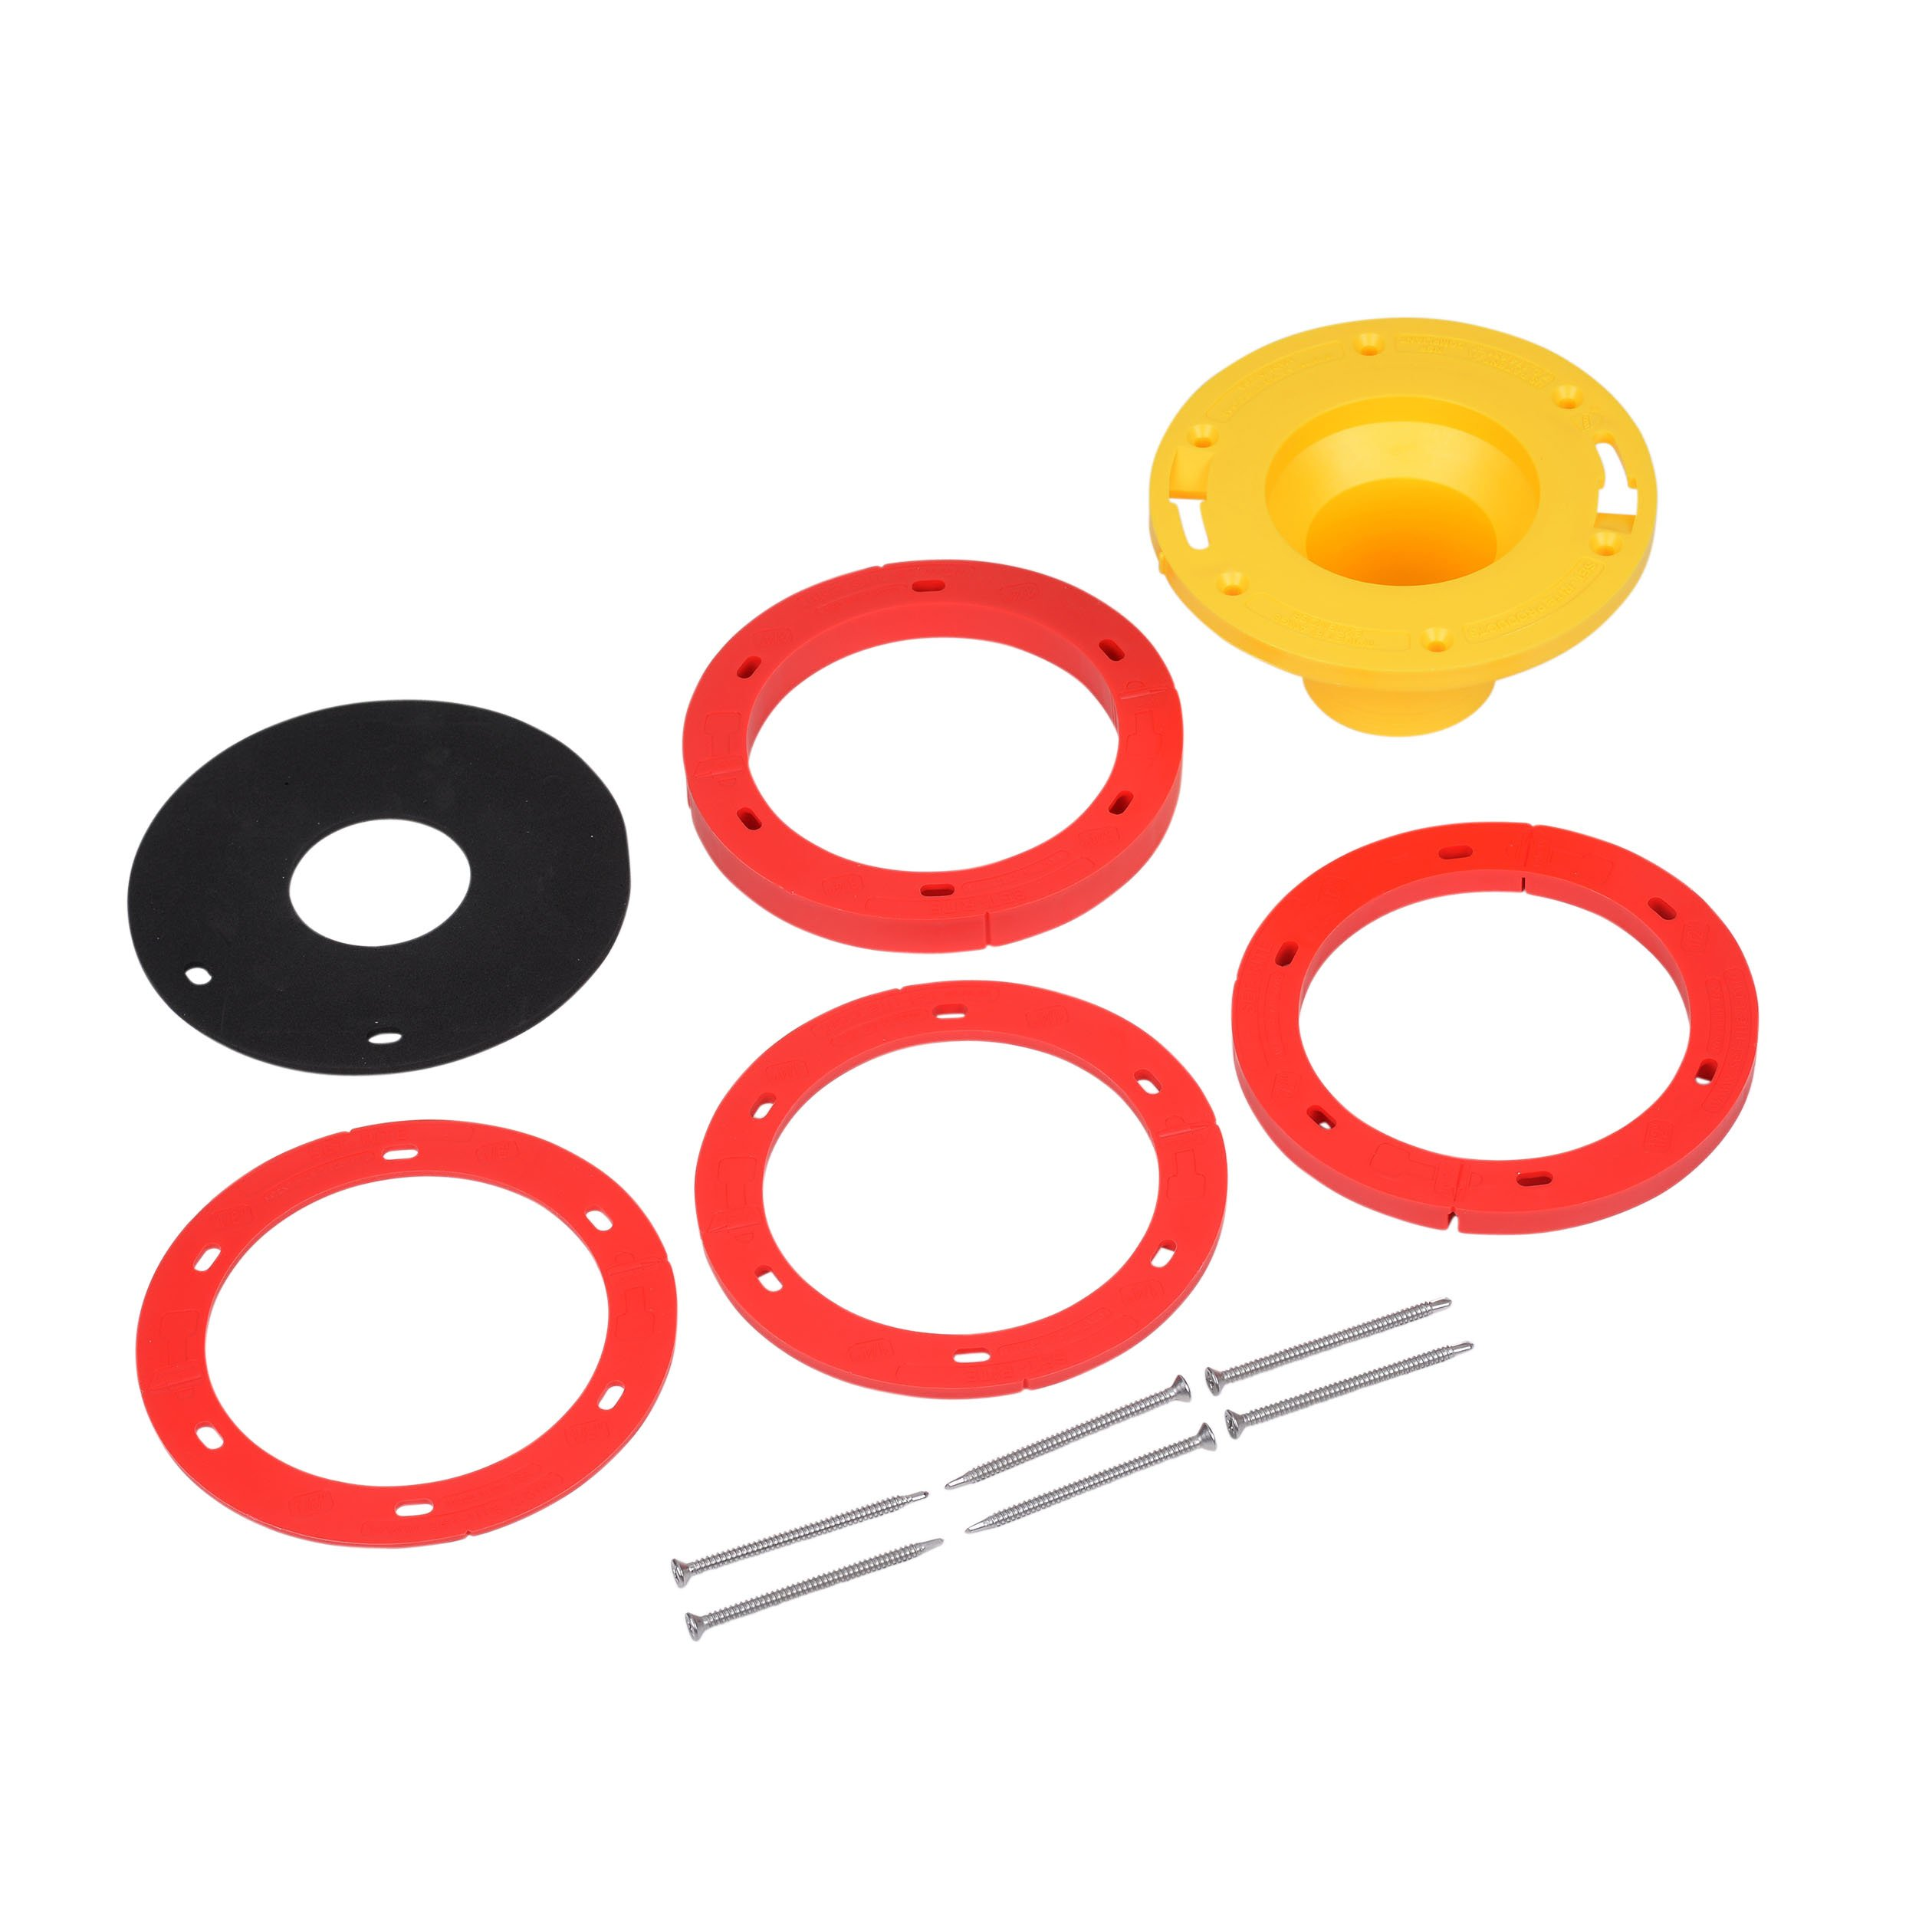 OATEY 43400 Set-Rite Toilet Flange Extension Kit, 1/4'' - 1-5/8'', Red, Yellow, used on PVC, ABS, Cast Iron and Stainless Steel